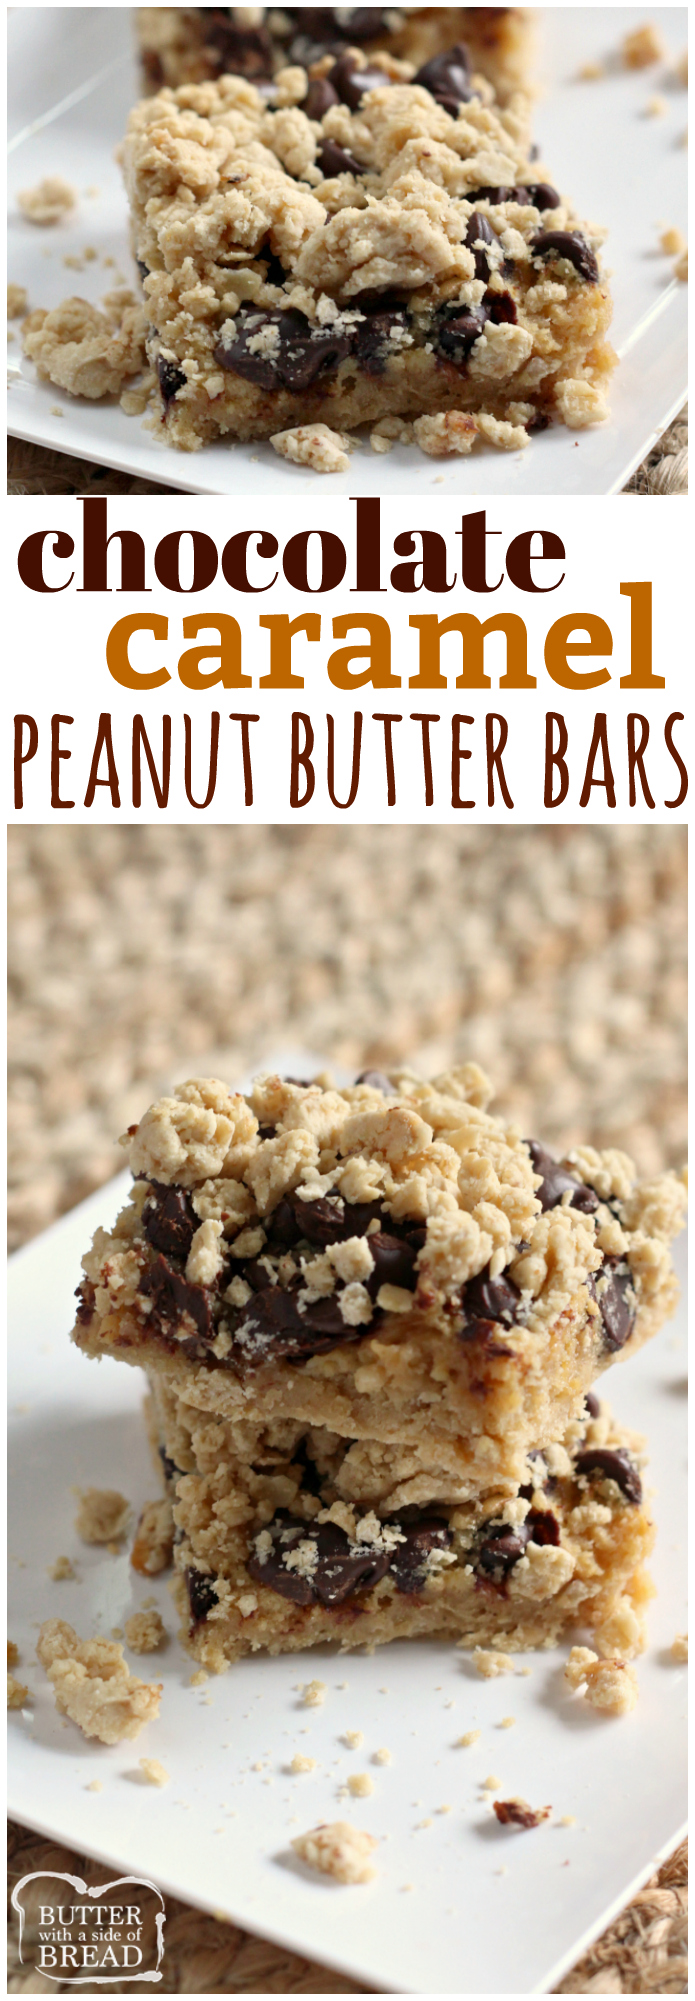 Chocolate Caramel Peanut Butter Bars begin with a cake mix and end with peanut butter, caramel topping, cream cheese, and chocolate! These amazing dessert bars combine all of your favorite flavors in one delectable treat!